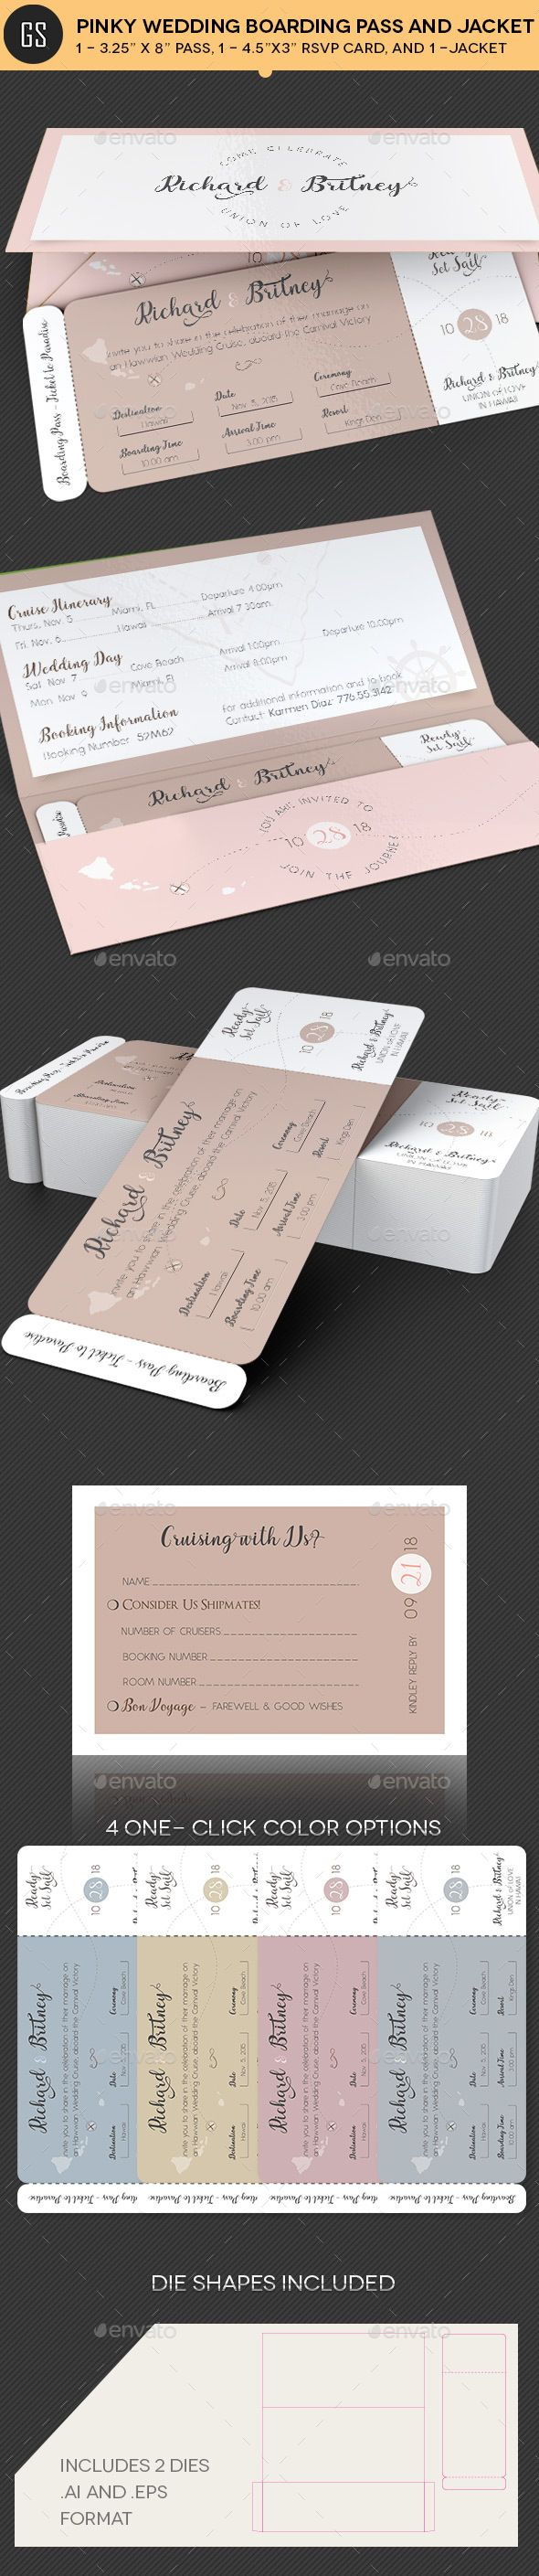 Pinky Wedding Boarding Pass Invitation Template — Photoshop PSD #engagement #invitation • Download ➝ https://graphicriver.net/item/pinky-wedding-boarding-pass-invitation-template/20061721?ref=pxcr